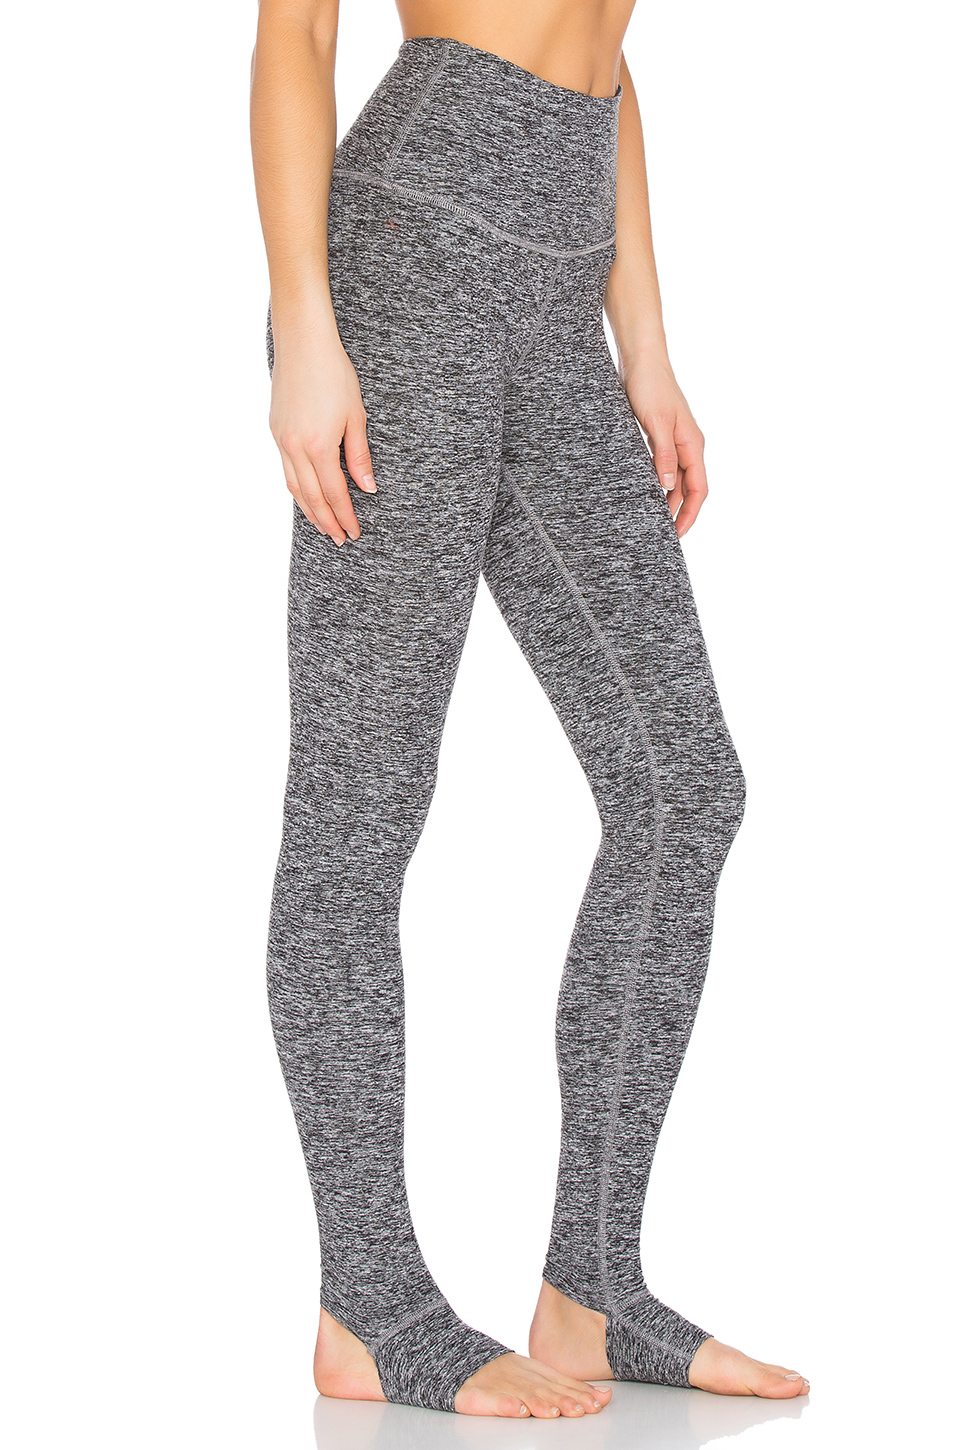 e40e4077a8c439 Beyond Yoga Spacedye High Waist Stirrup Legging in Black - Lyst